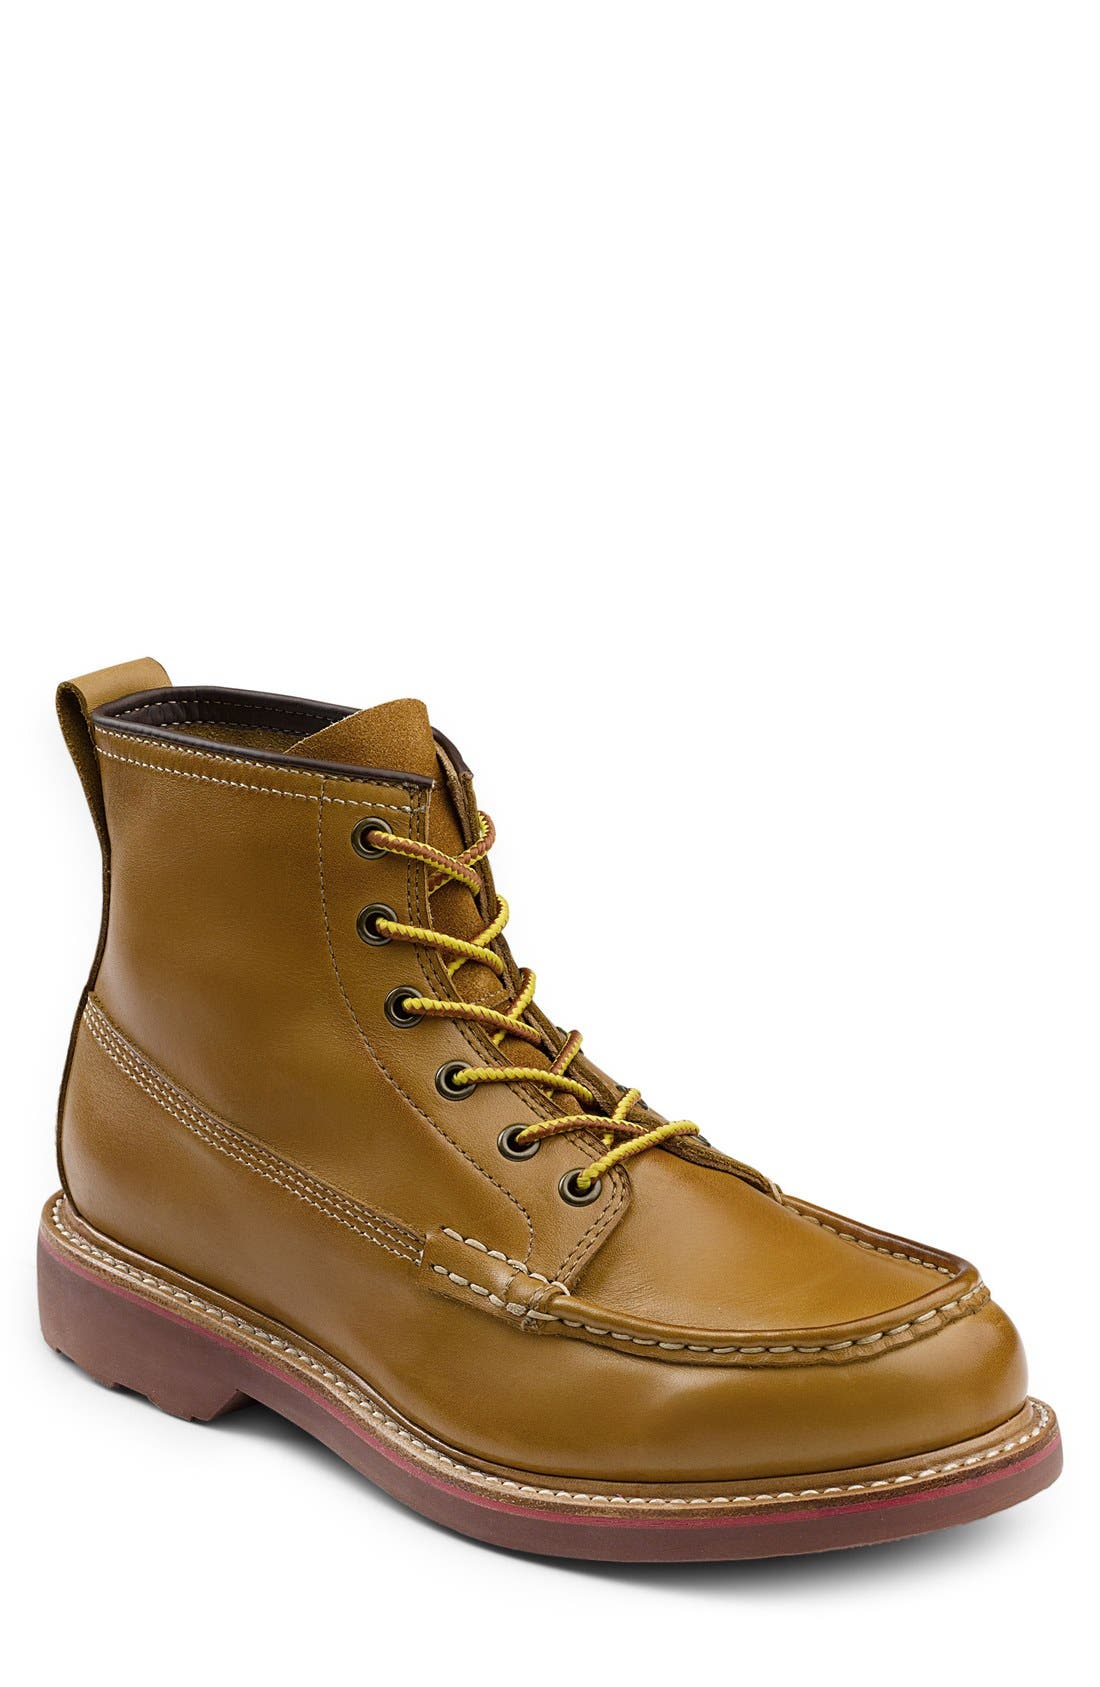 'Ashby' Moc Toe Boot,                             Main thumbnail 3, color,